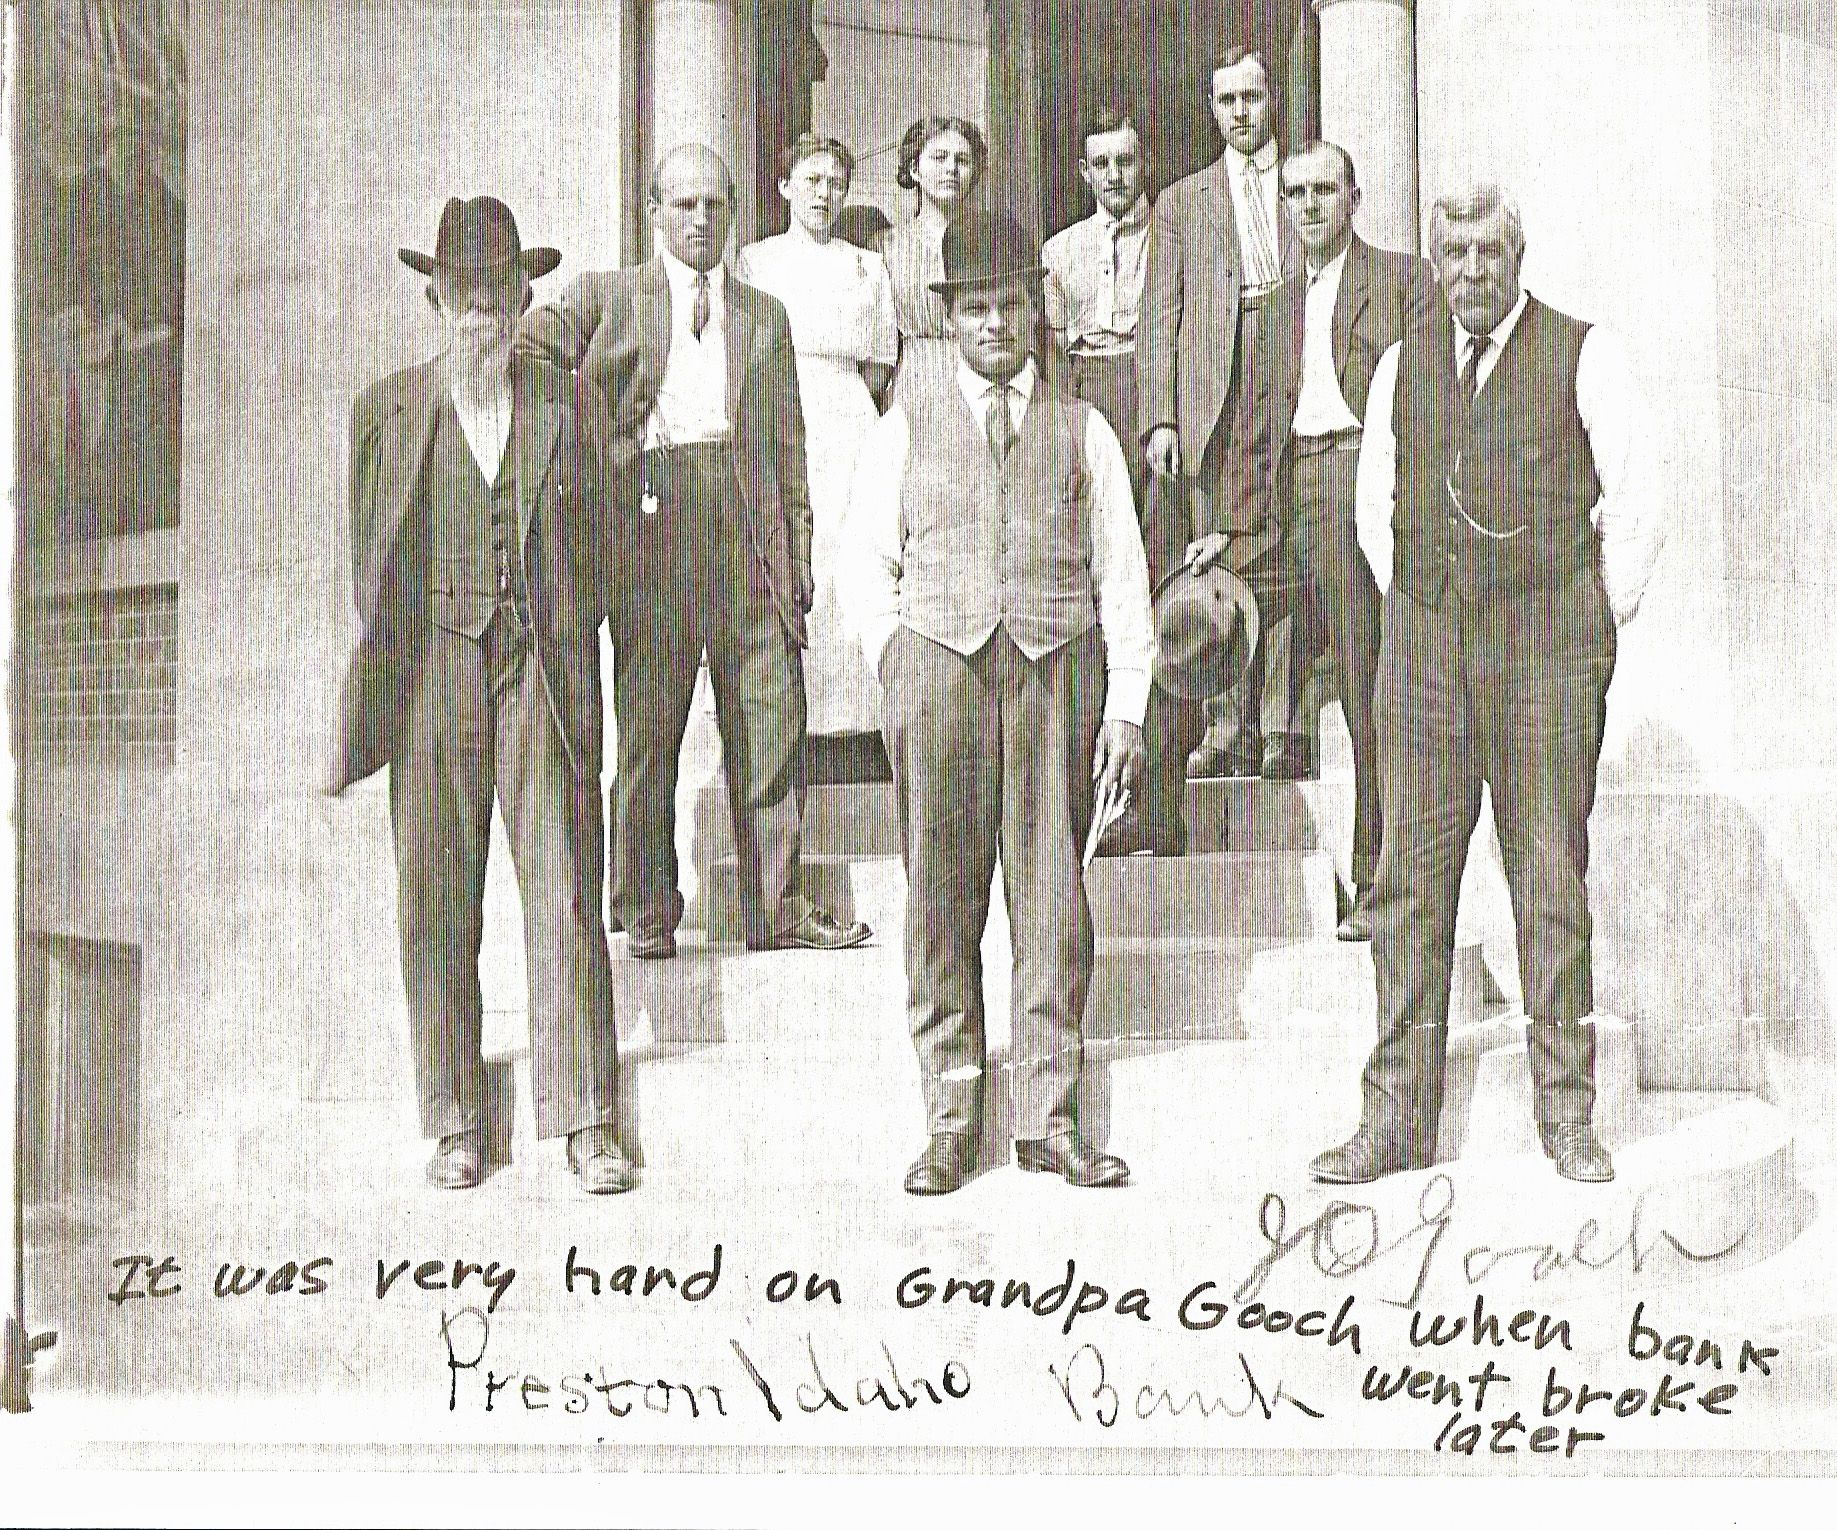 Preston Idaho Bank, John Gooch. Note from Jennie B. Brown Hollist: It was very hard on Grandpa Gooch when the bank went broke later. Publish and preserve your family history photos for free, and always available, on FamilySearch.